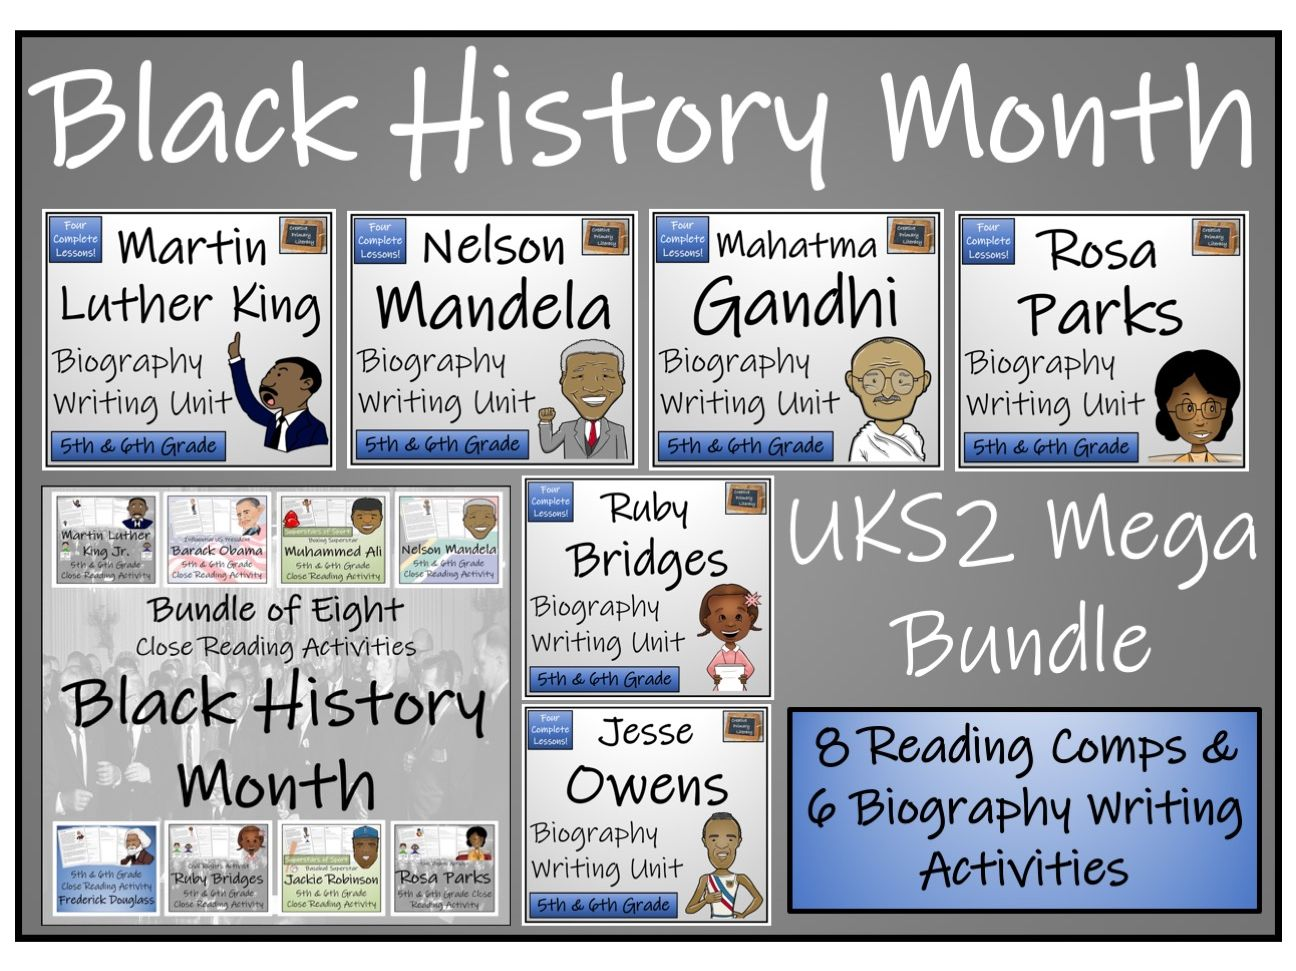 UKS2 Black History Month Reading Comprehension & Writing Bundle